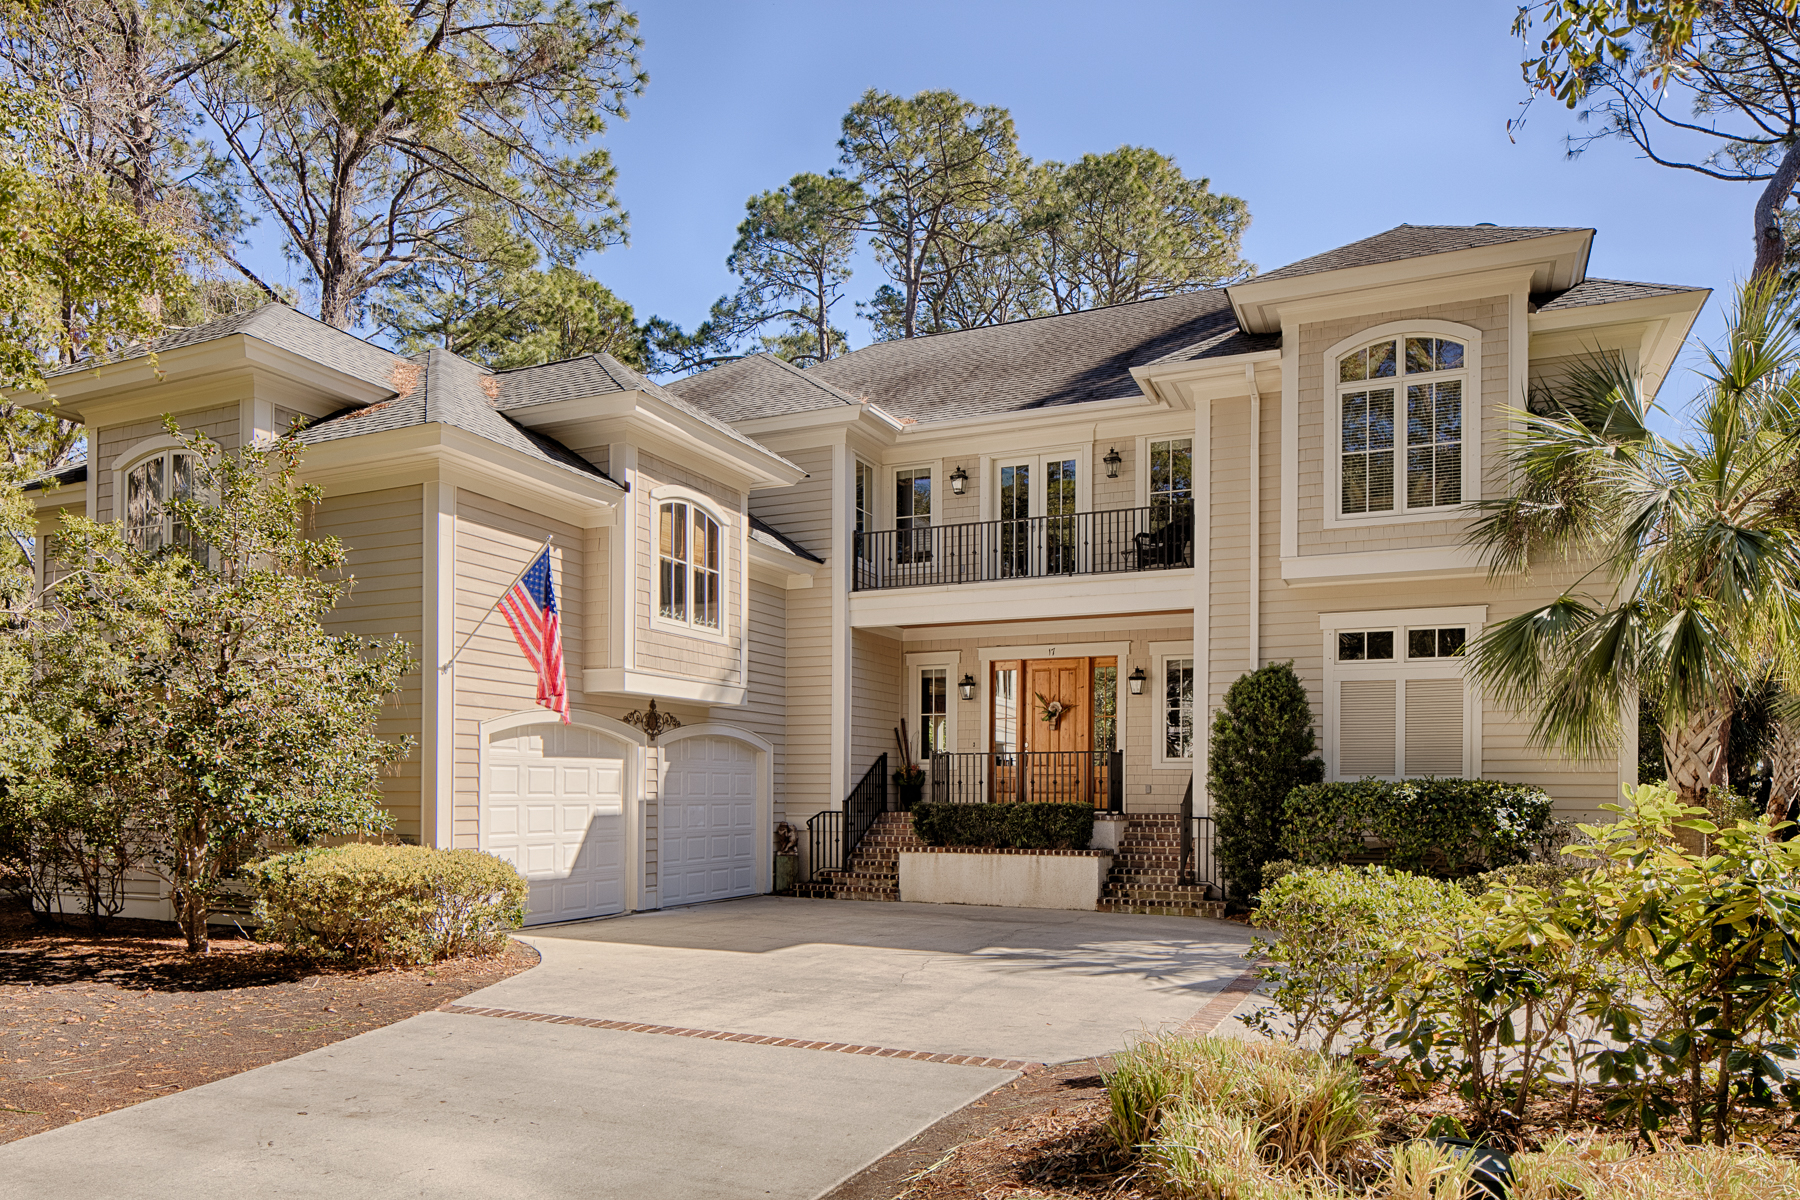 Single Family Home for Sale at 17 Wood Ibis Road 17 Wood Ibis Road Hilton Head Island, South Carolina 29928 United States